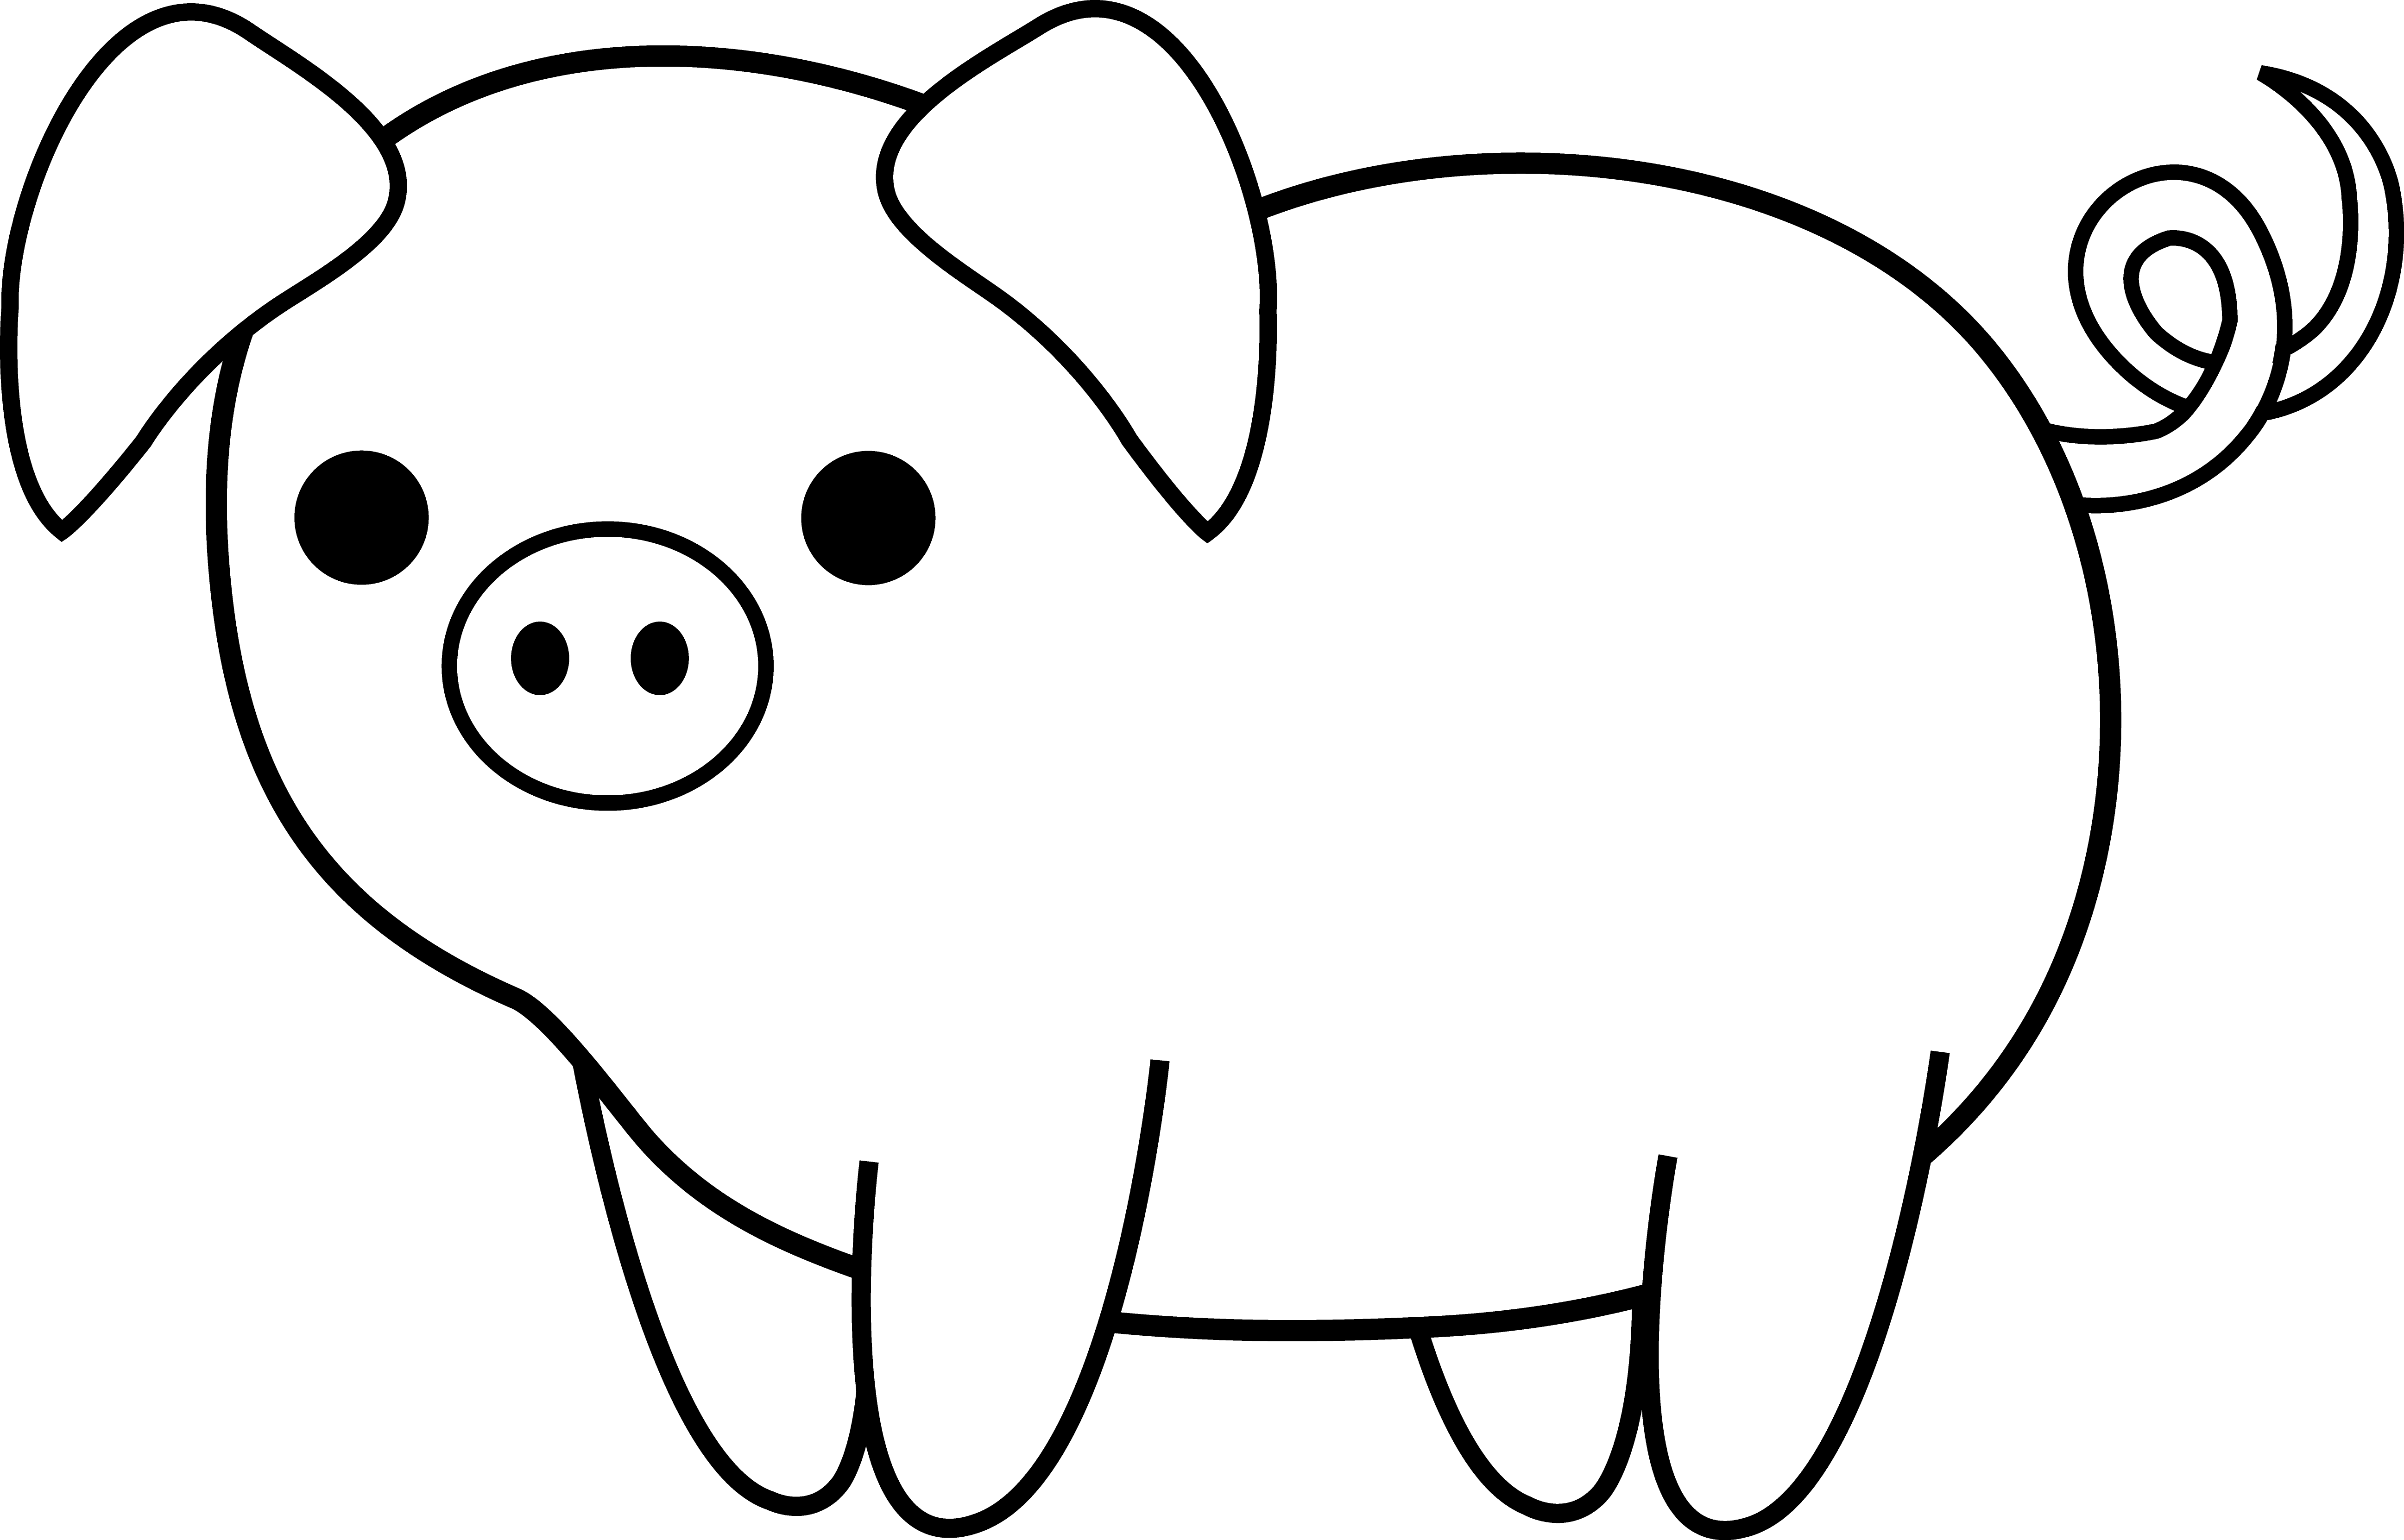 Free clipart black and white cute animal jpg free library Cute Black and White Pig | Clip Art | Pig drawing, Pig crafts ... jpg free library